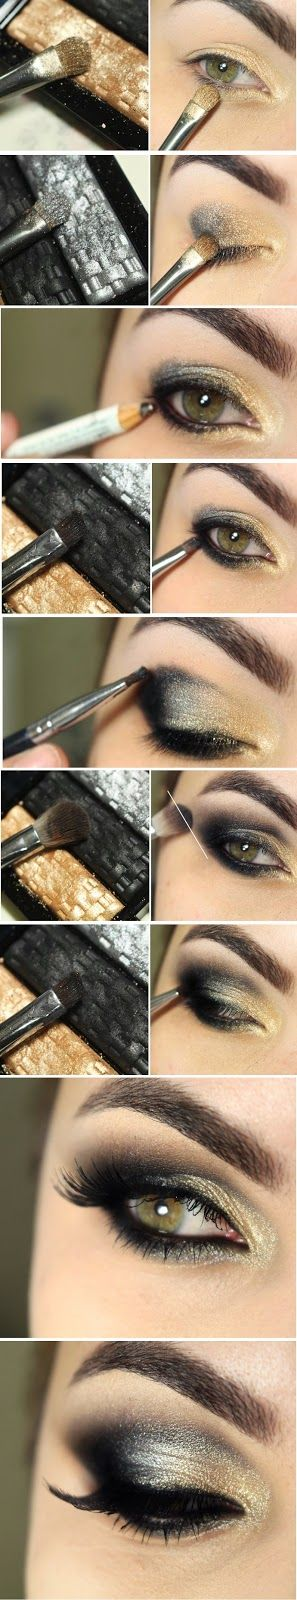 Wonderful Gold with Smokey eye Makeup Tutorials / Best LoLus Makeup Fashion